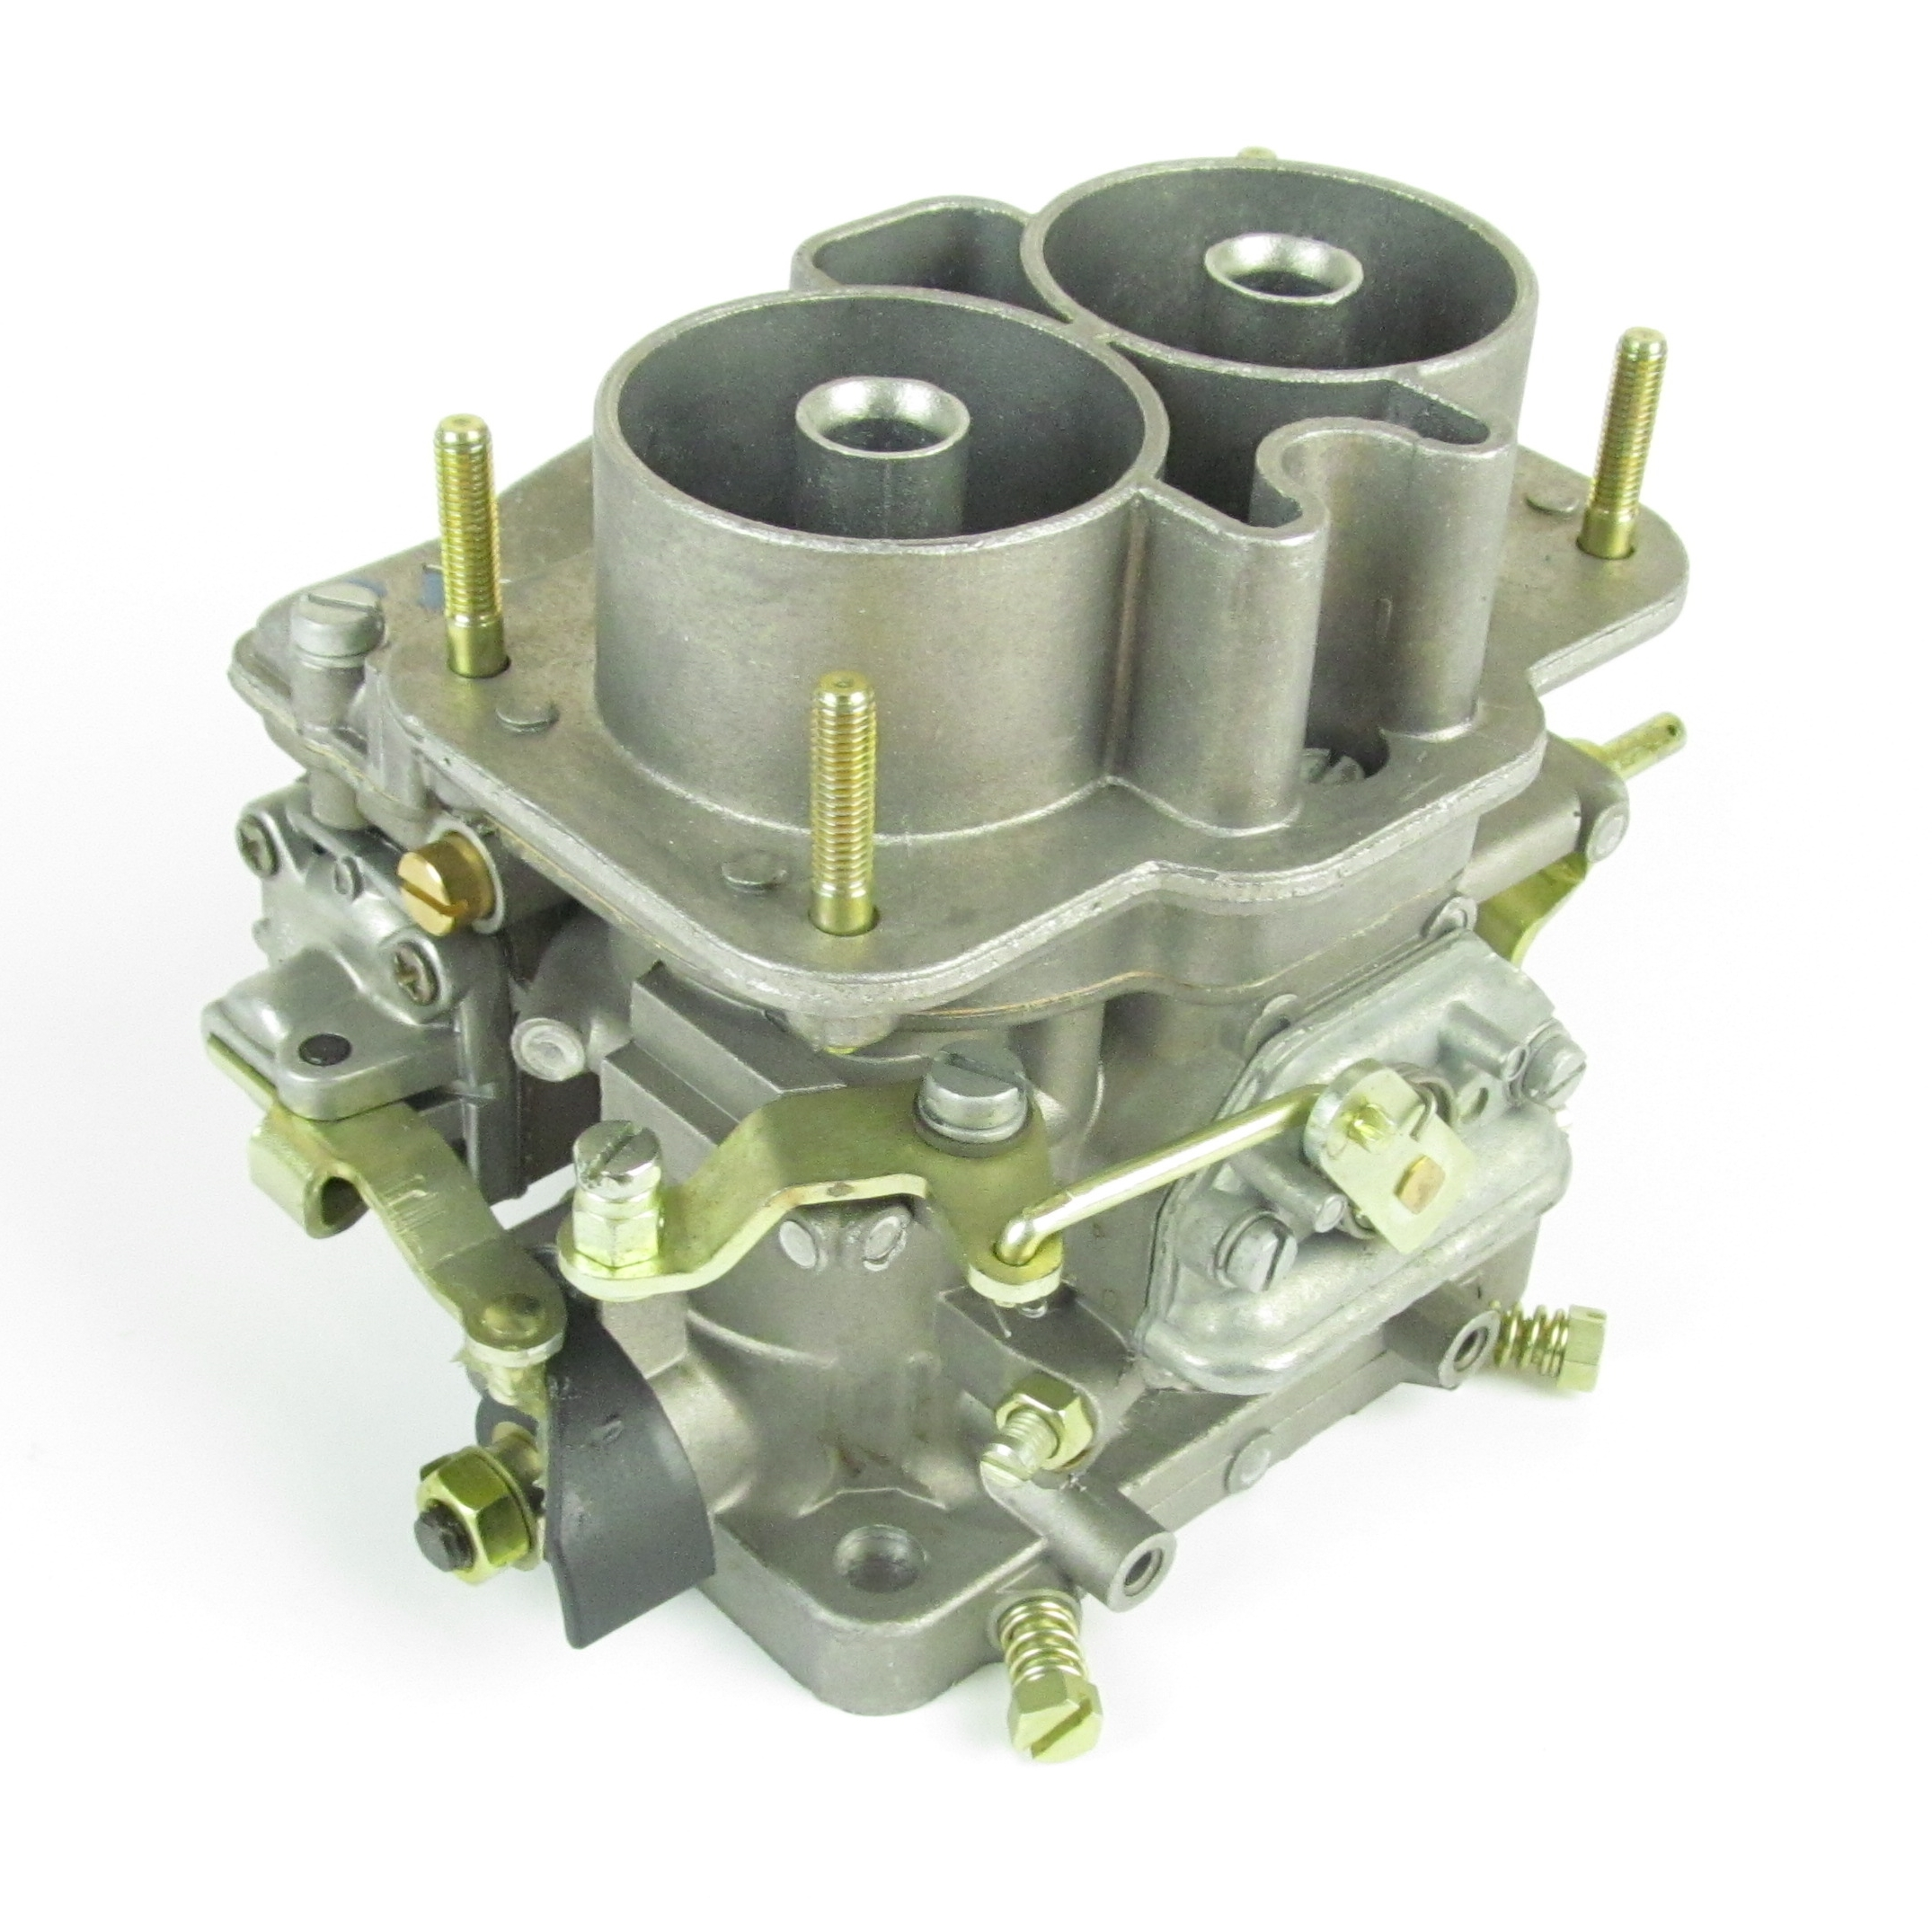 GENUINE WEBER 40 DCNF CARBURETTOR - FERRARI / FIAT / FORD / V6 / V8 ENGINES